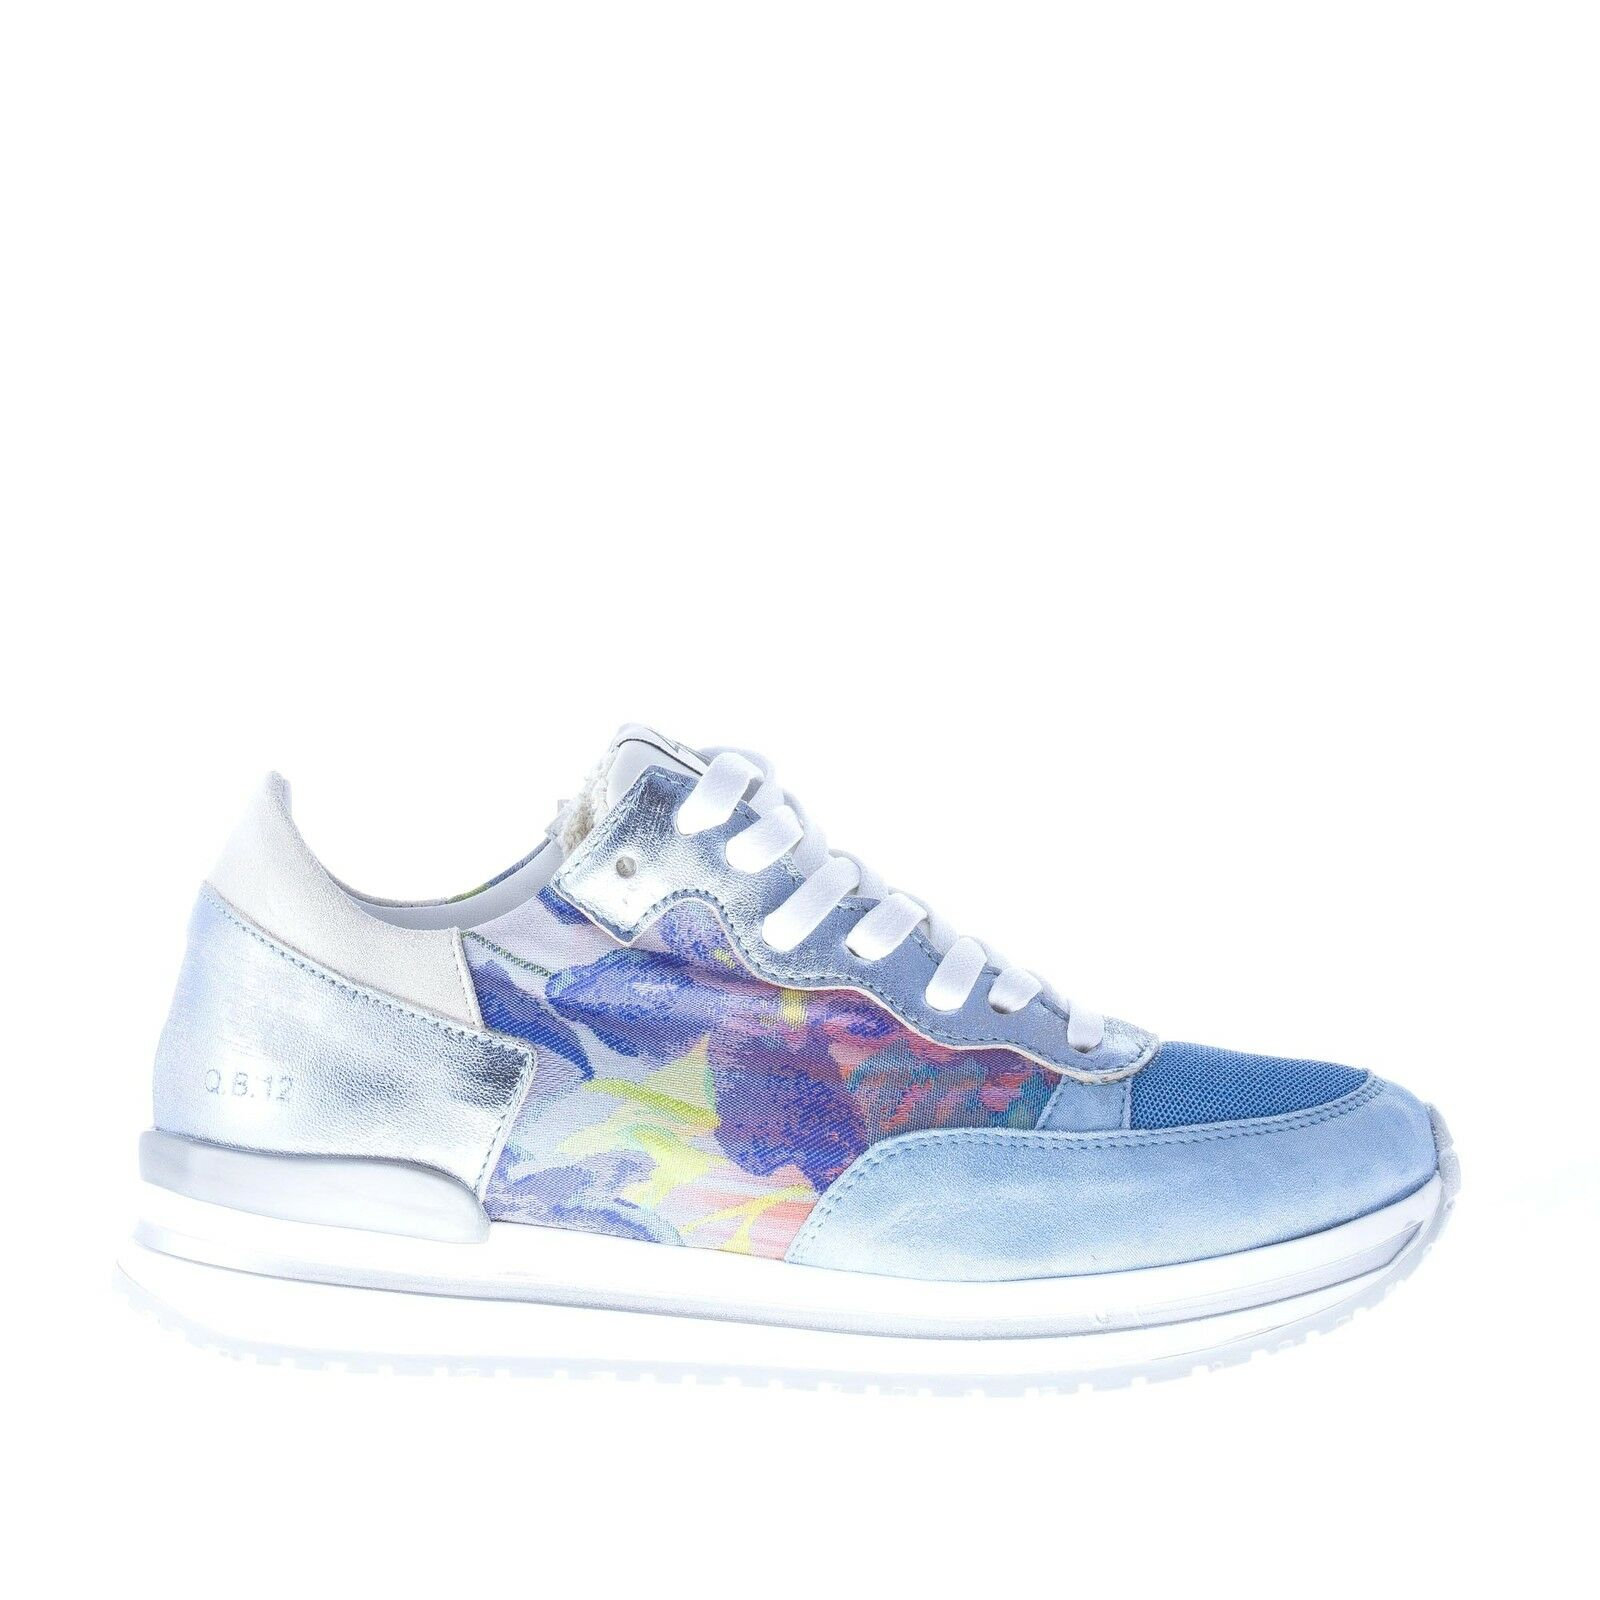 QUATTROBARRADODICI shoes femme bluee suede and fabric sneakers floral print